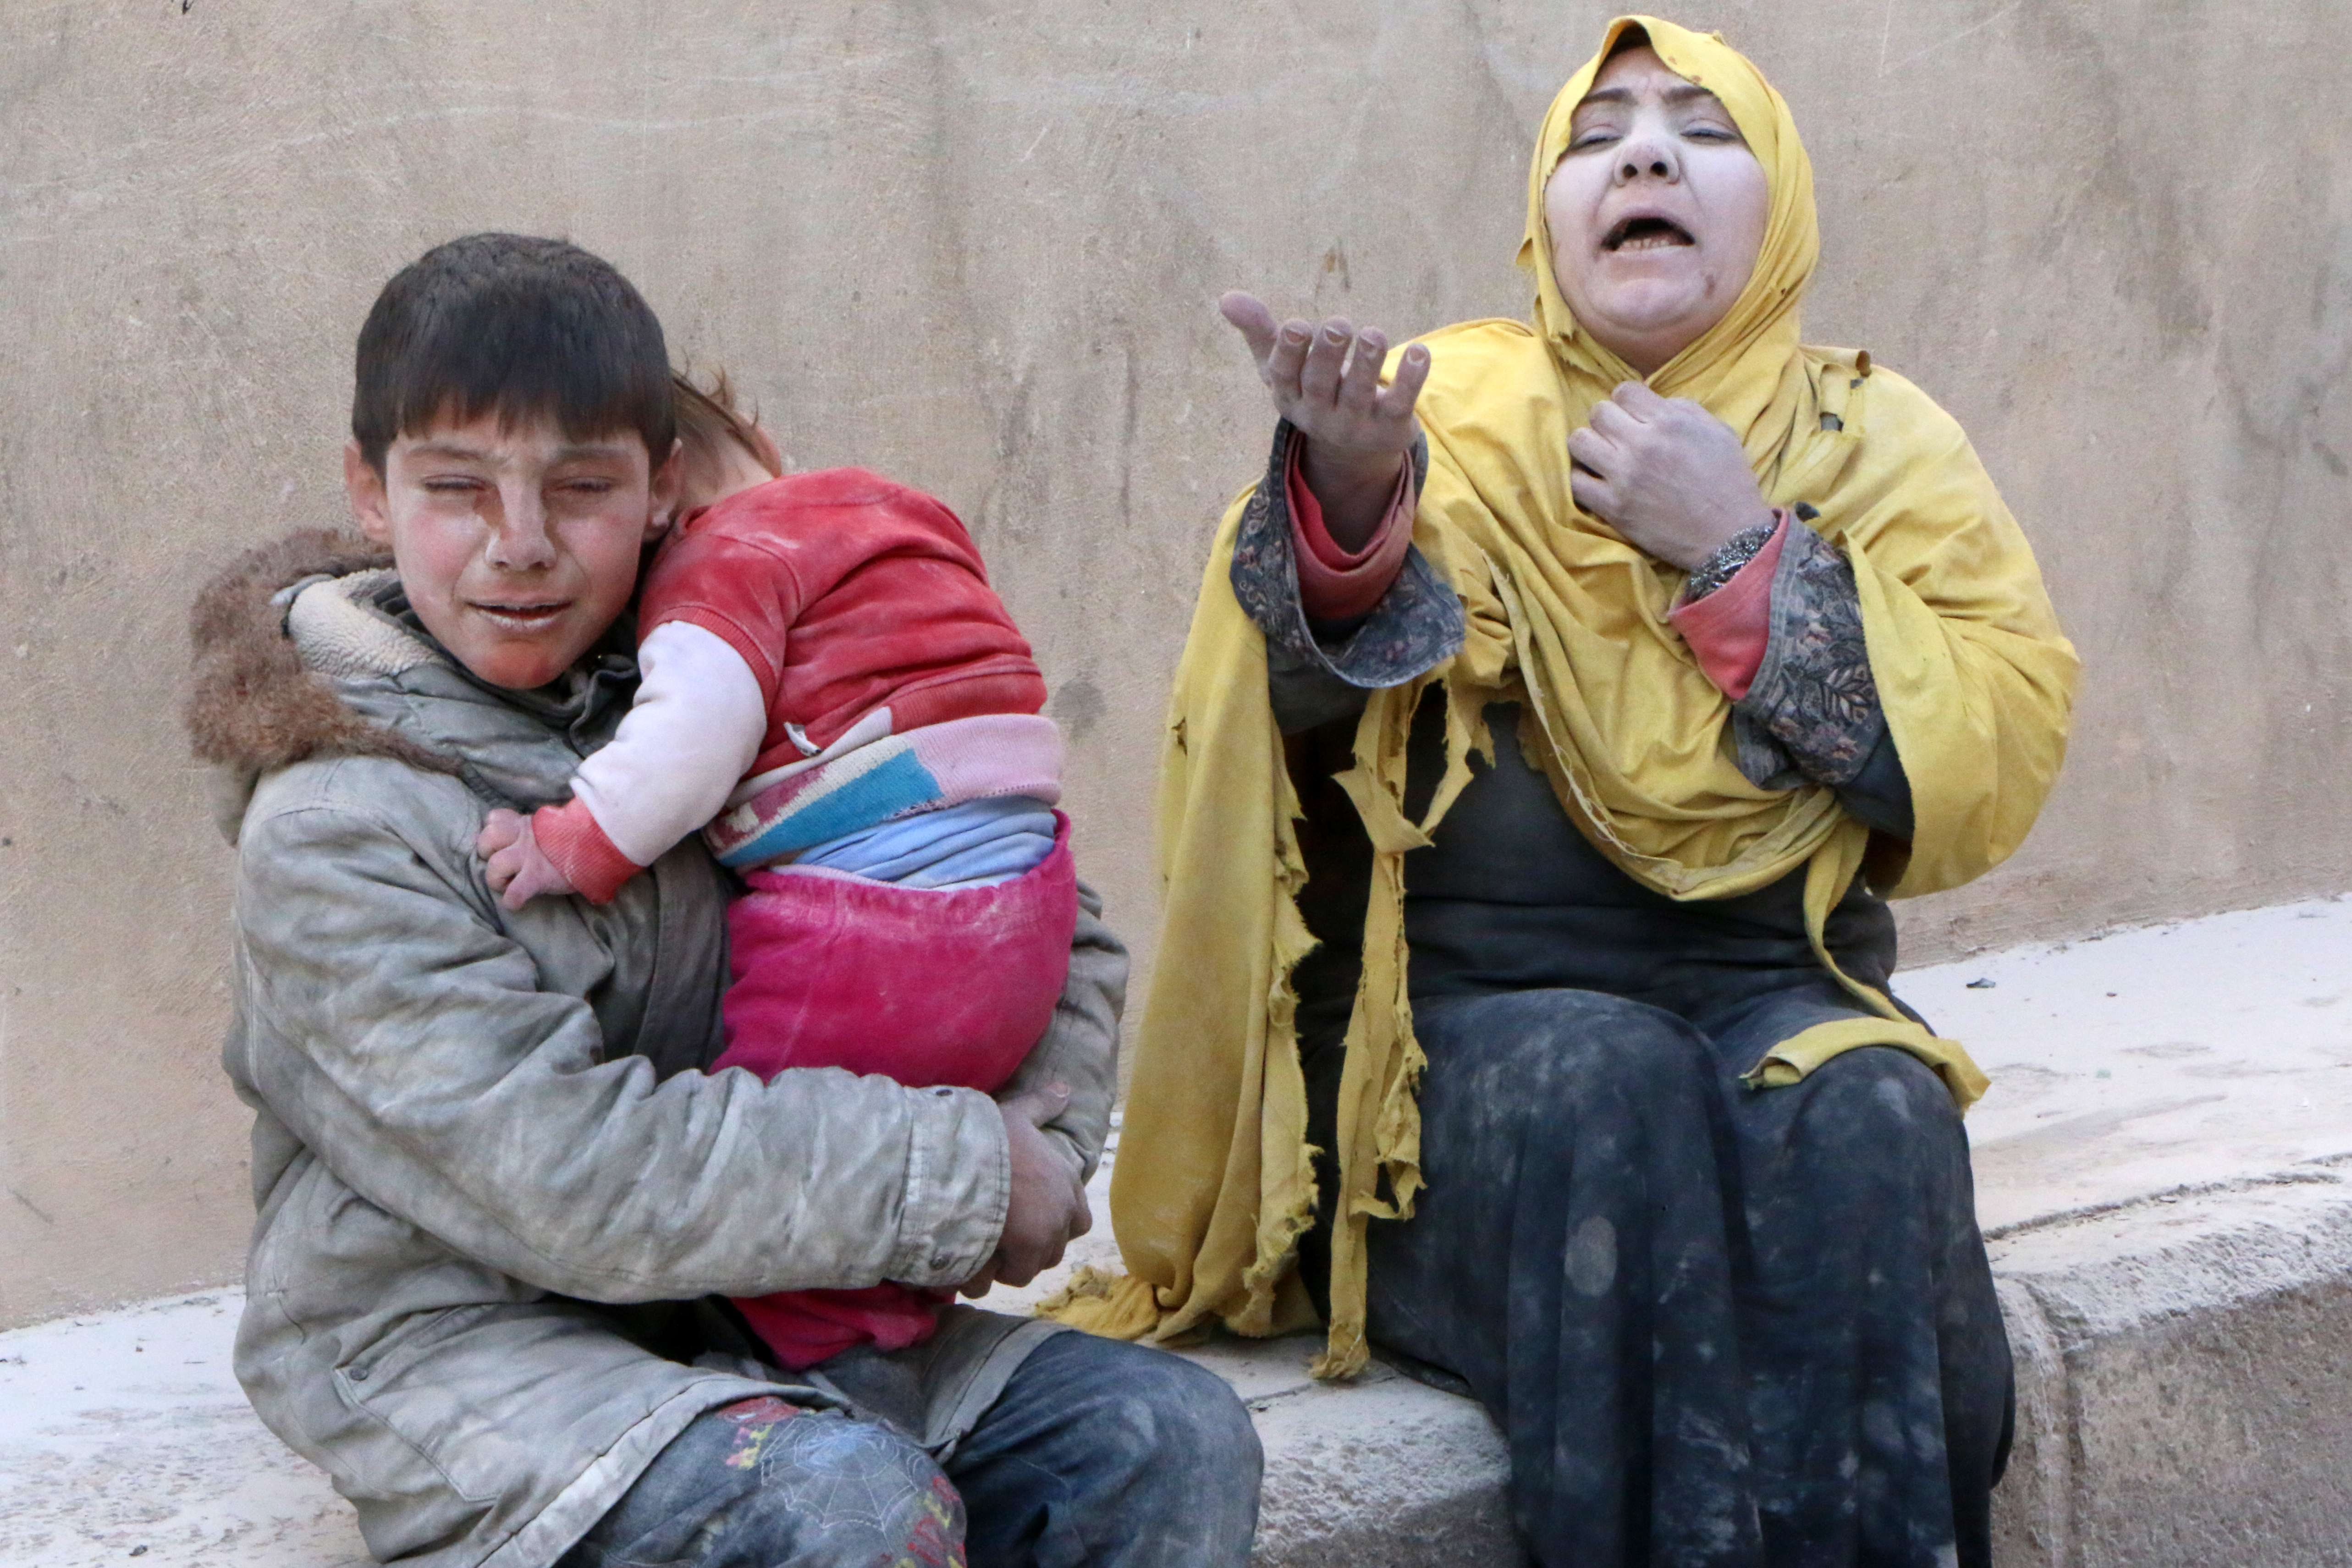 A woman, a young boy and a baby, covered with dust, sit in a state of shock following a reported air strike attack by government forces on the Hanano district of the northern Syrian city of Aleppo on February 14, 2014. Syria's warring sides began what was expected to be a decisive final day of talks in Geneva, amid warnings that they must at least agree an agenda to save the process.    (AFP PHOTO/ALEPPO MEDIA CENTRE/FADI AL-HALABI)